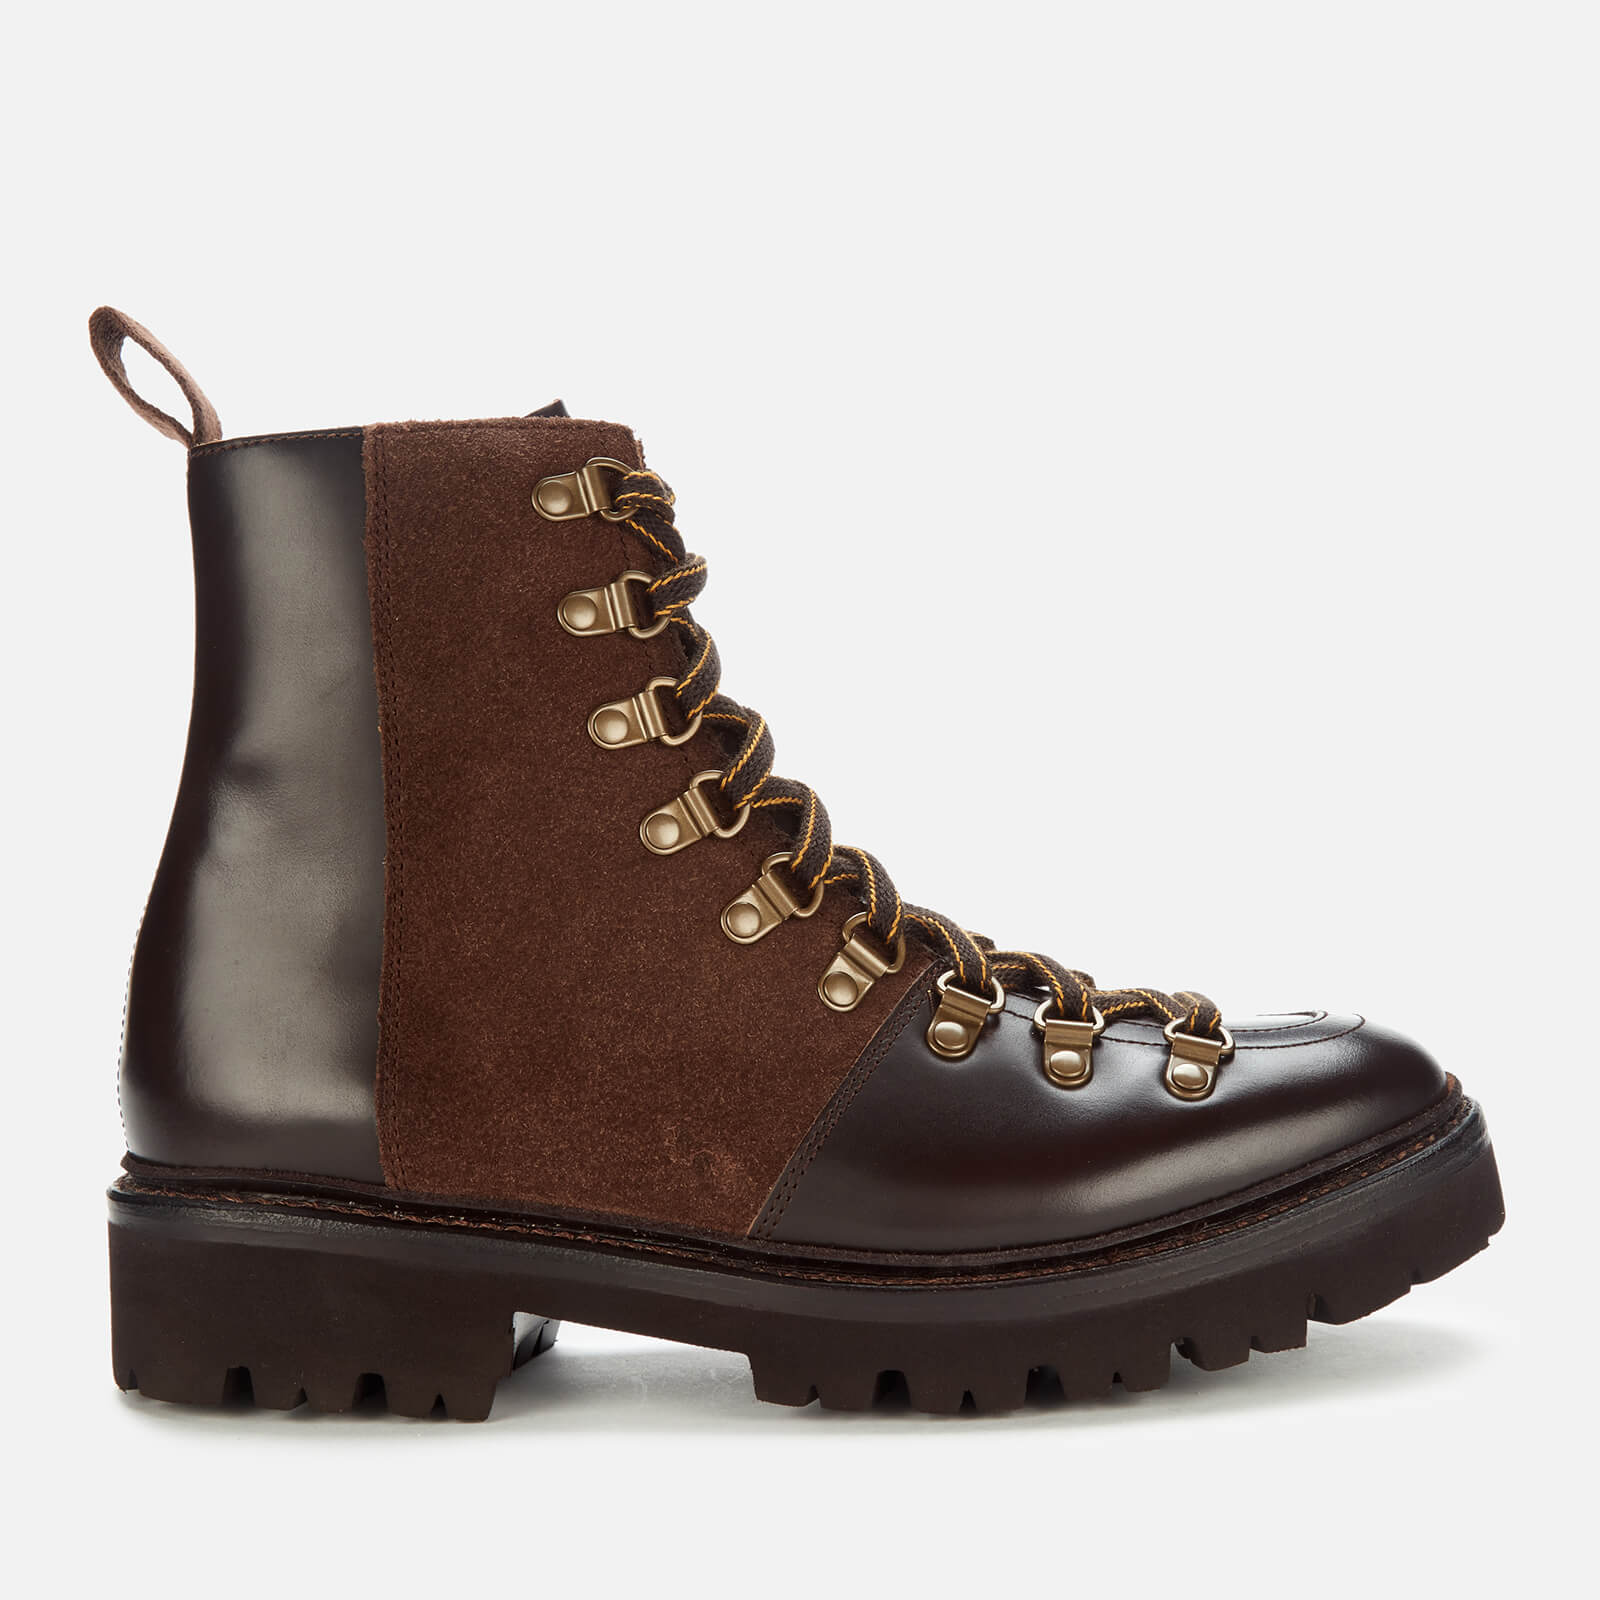 Grenson Women's Nanette Leather Hiking Style Boots - Dark Brown - Uk 3